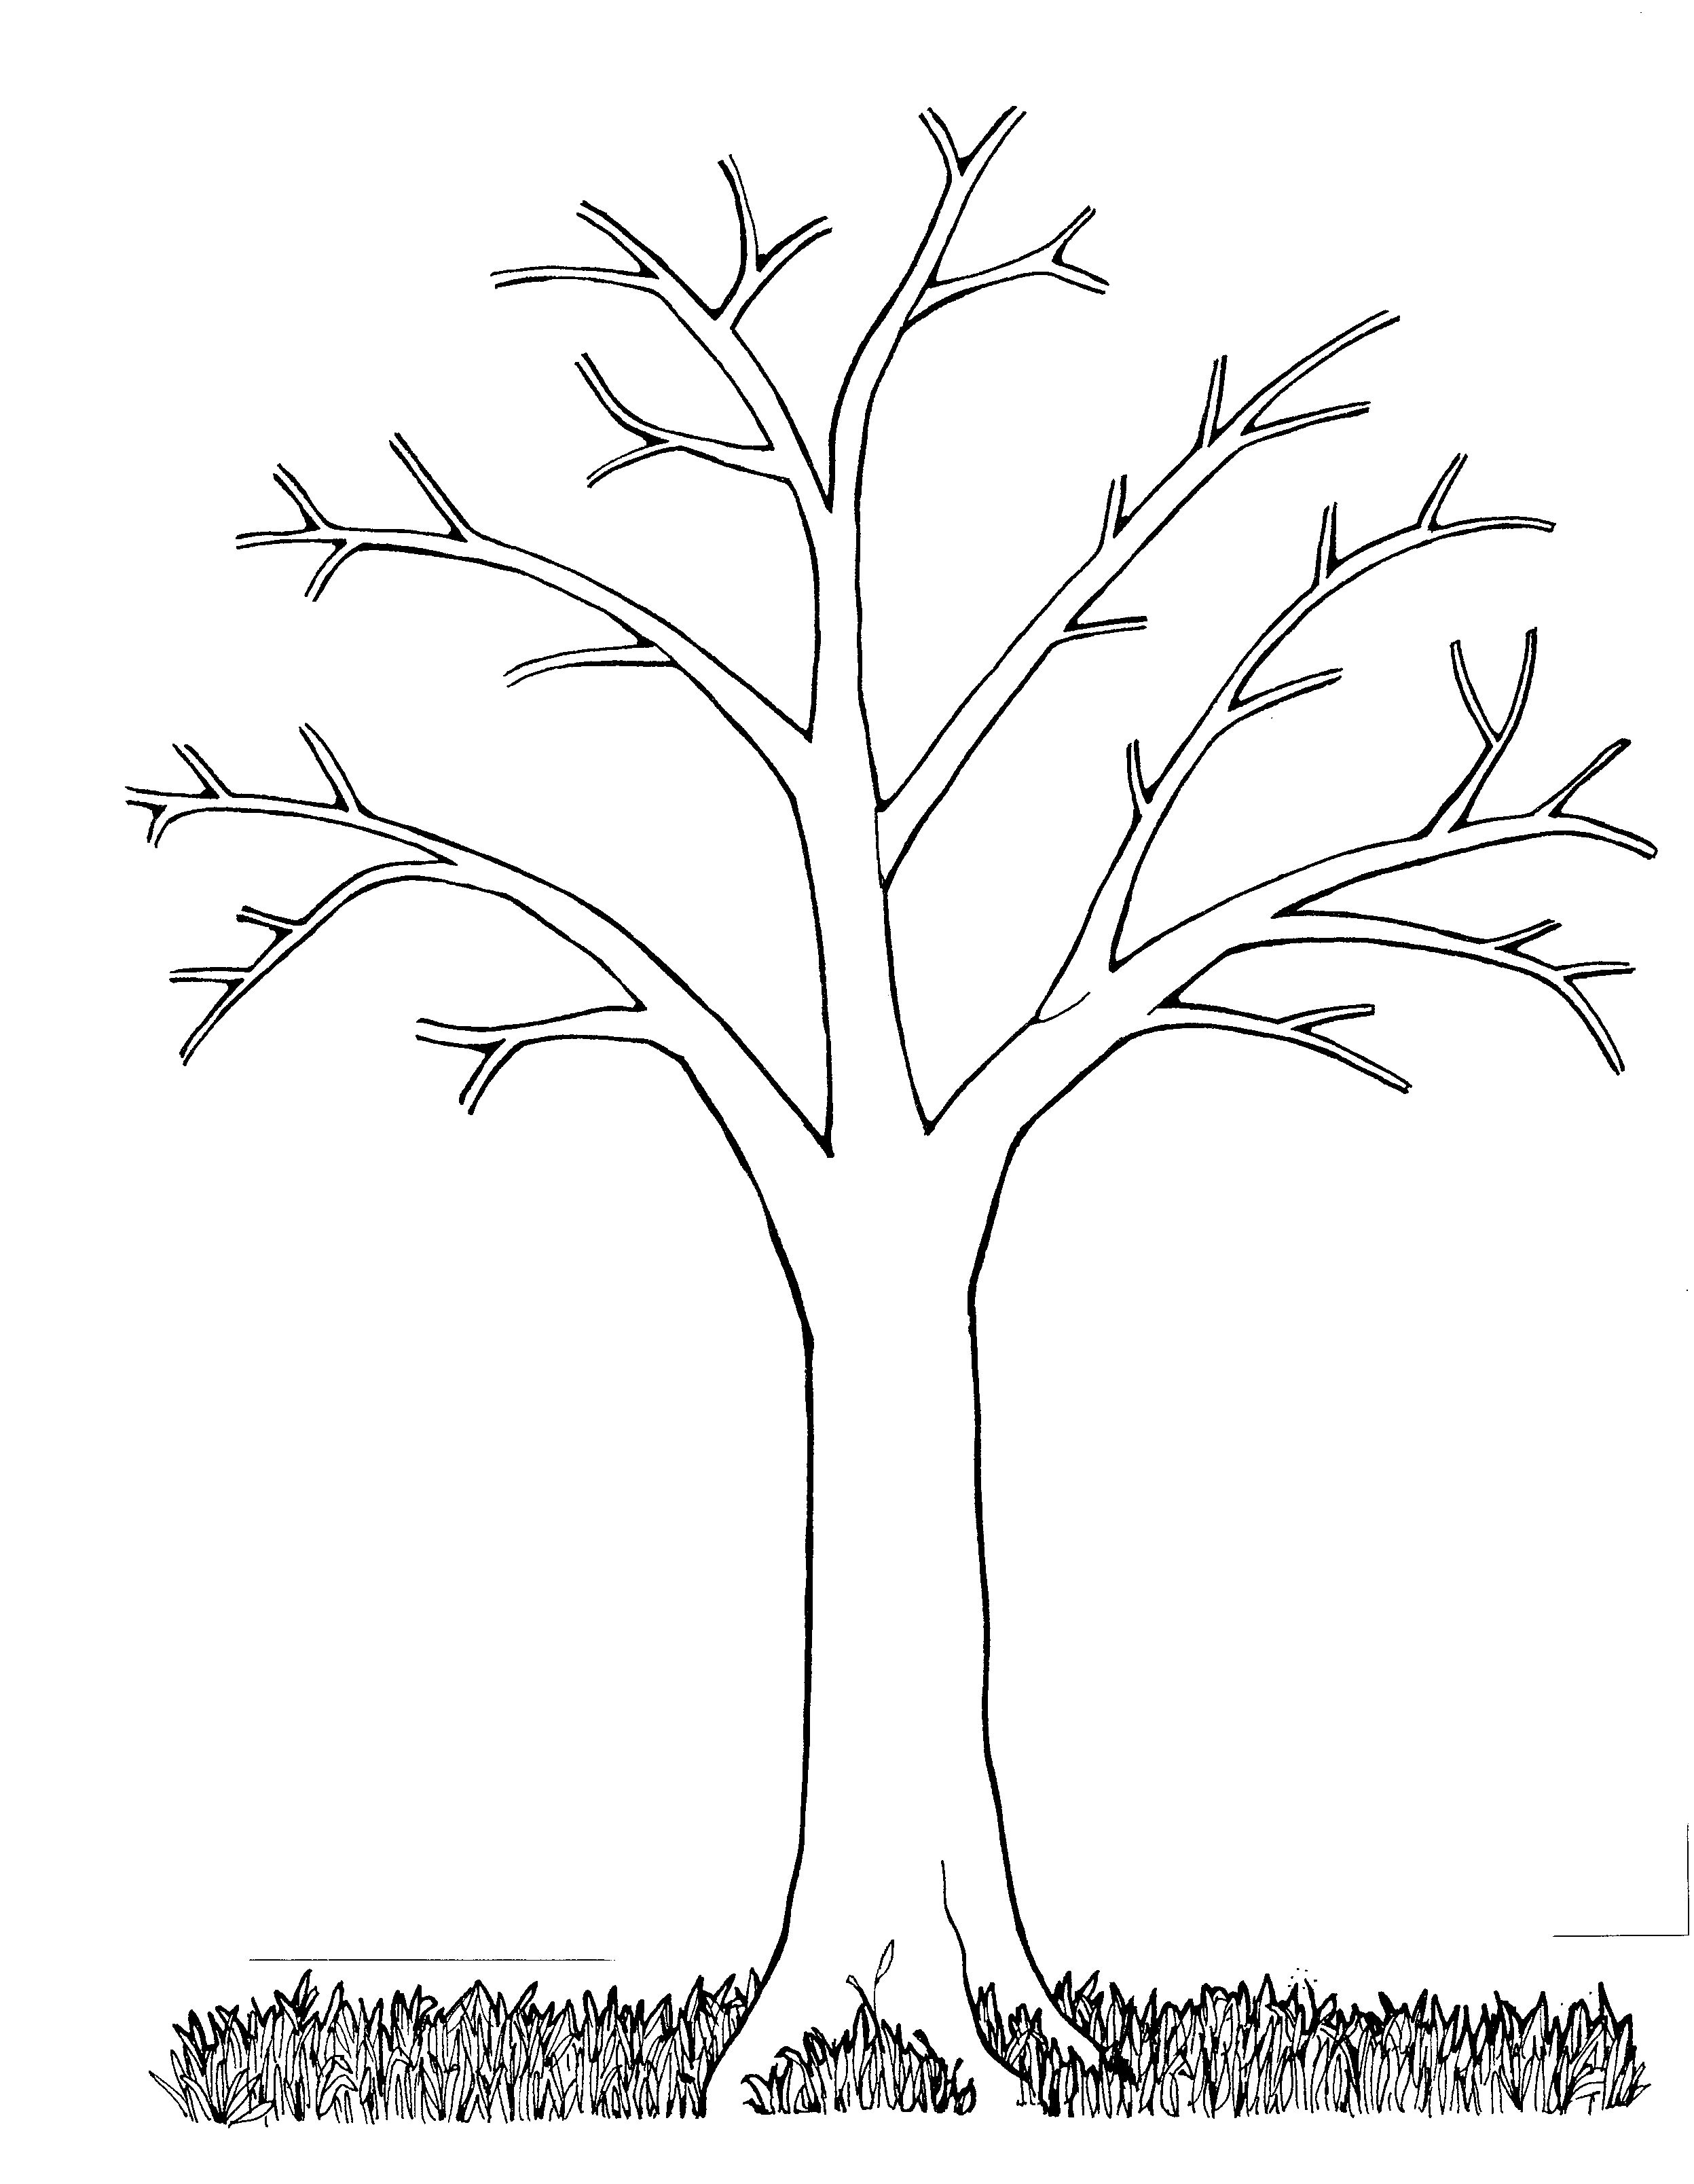 Barren Tree Coloring Pages For Adults Printable Menggambar Pohon Pohon Kertas Pohon